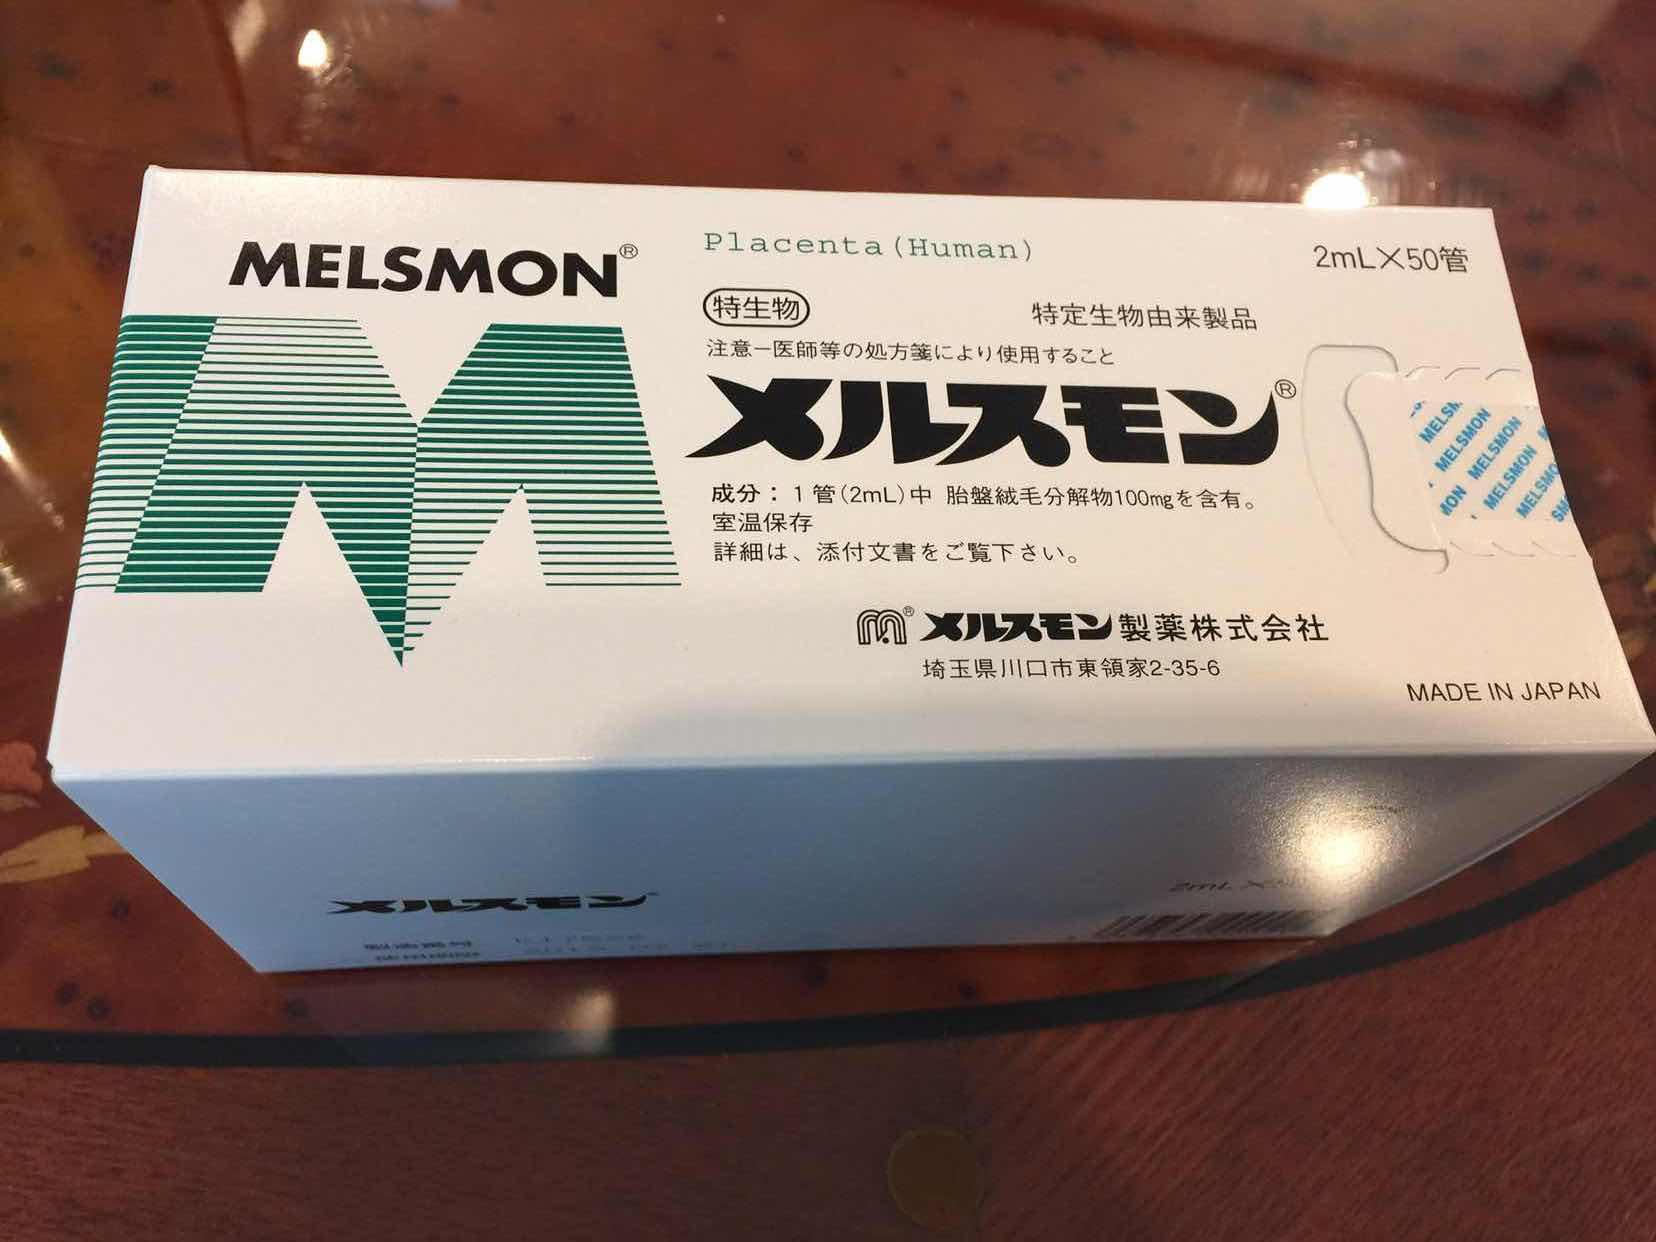 Hot Sale Melsmon (Human Placenta Inj.) /Injectable Dermal Filler/Ha Dermal Filler Get Latest Price